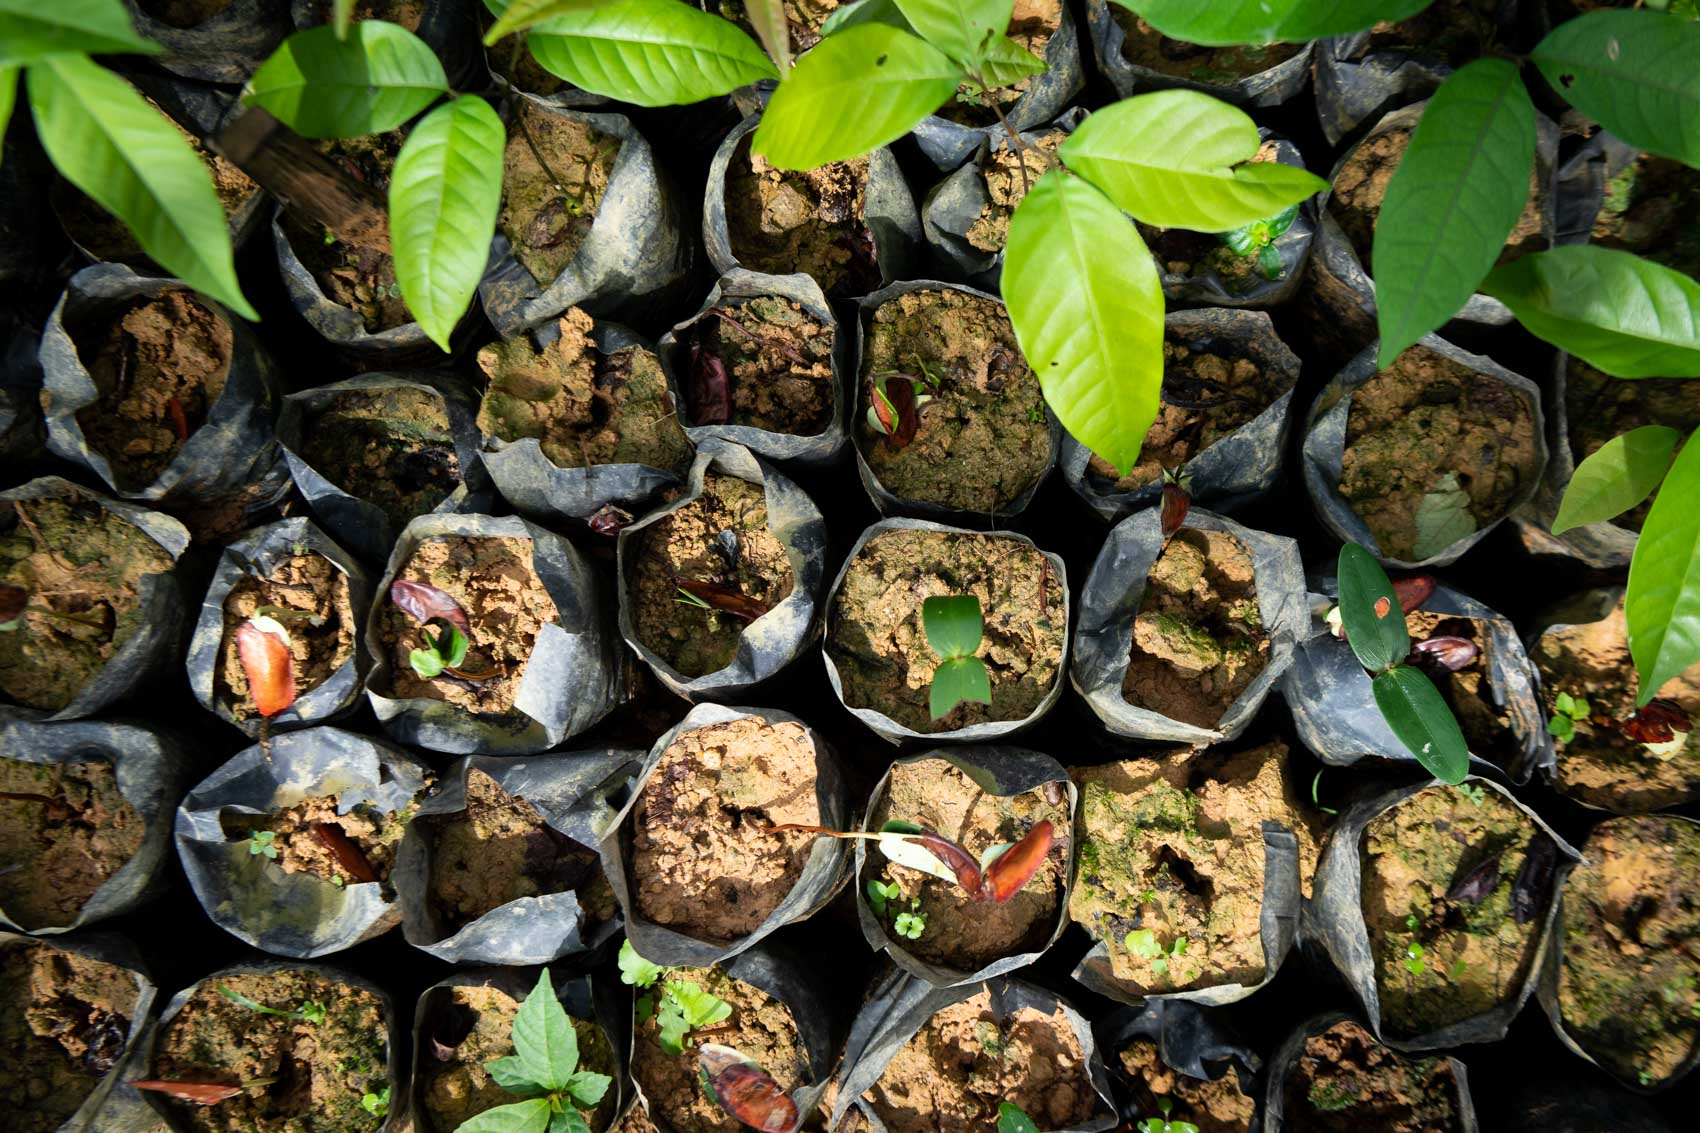 Seedlings in a plastic containers at the Orangutan Information Centre Cinta Raja restoration site